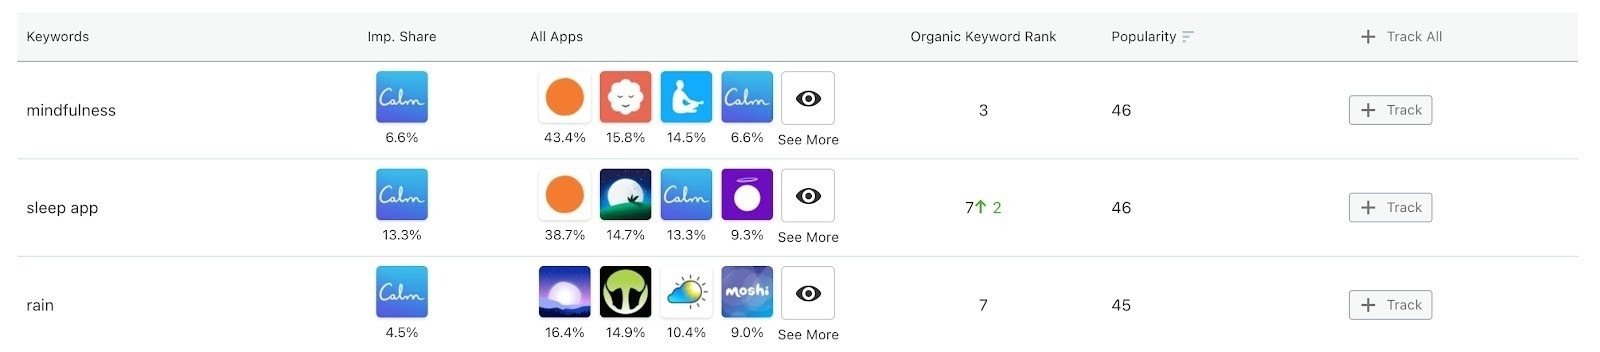 Mobile App Insights image 8